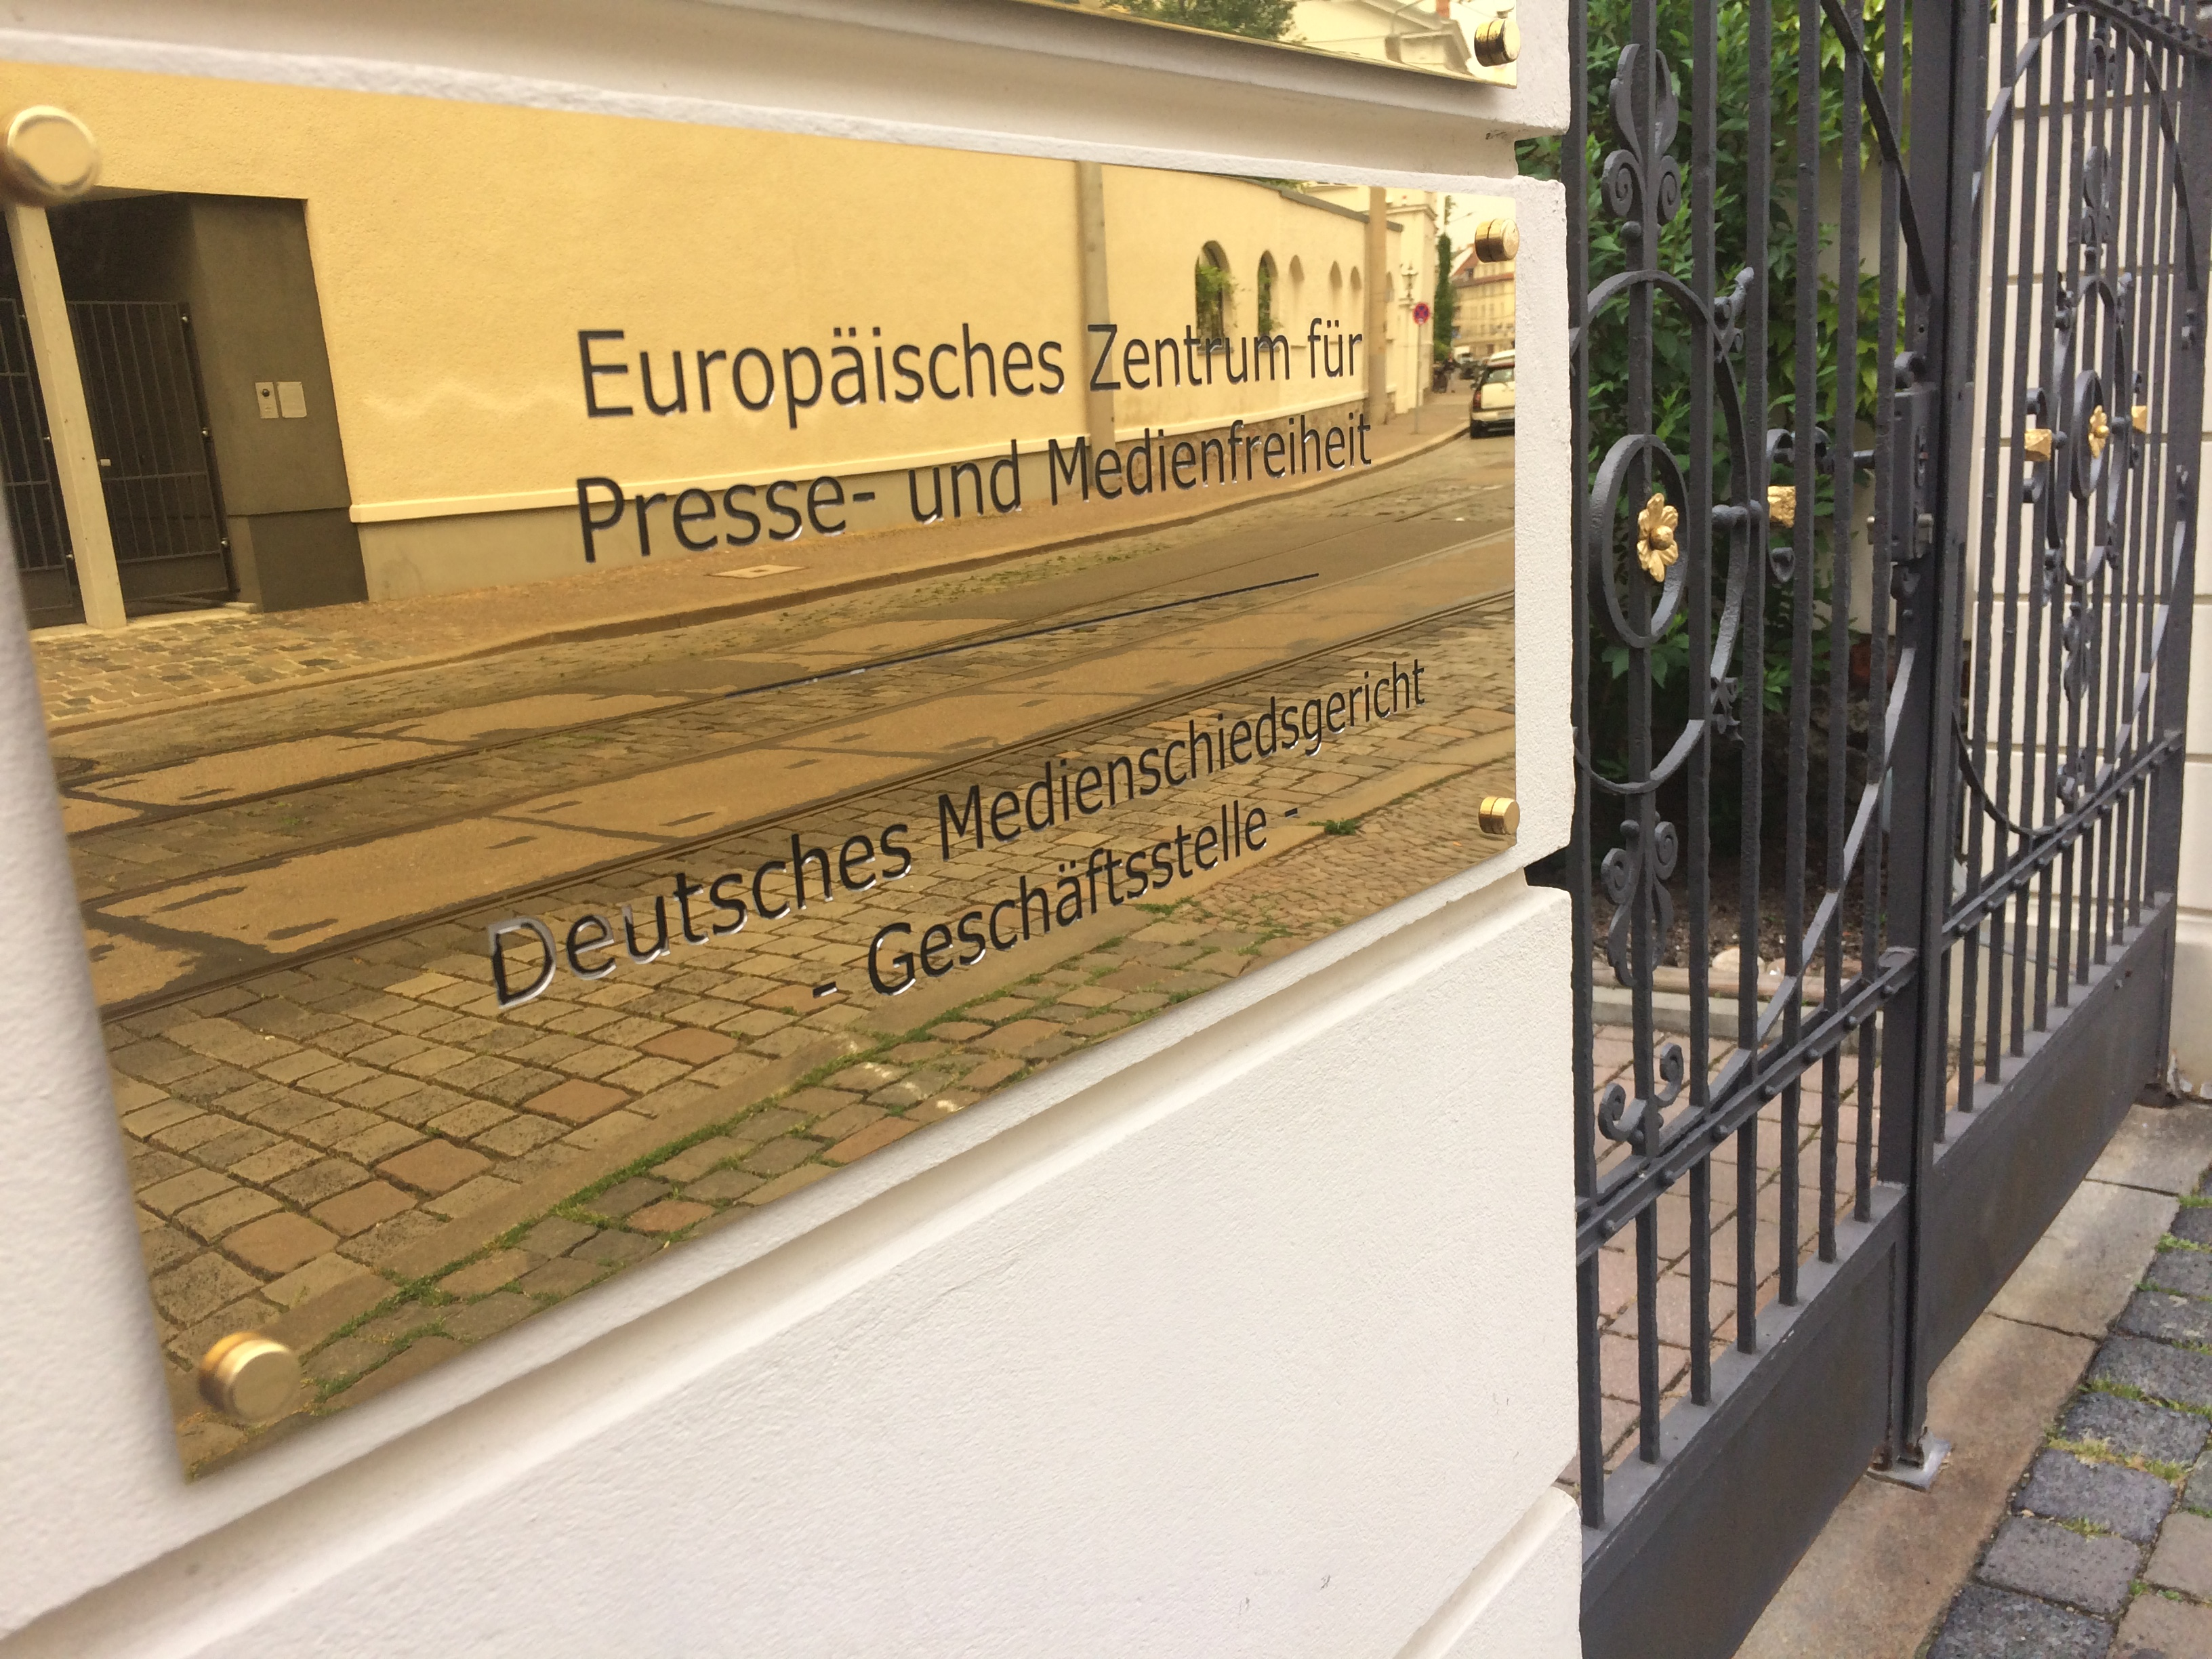 Der Eingang des Eeropean Center of Press and Media Freedom